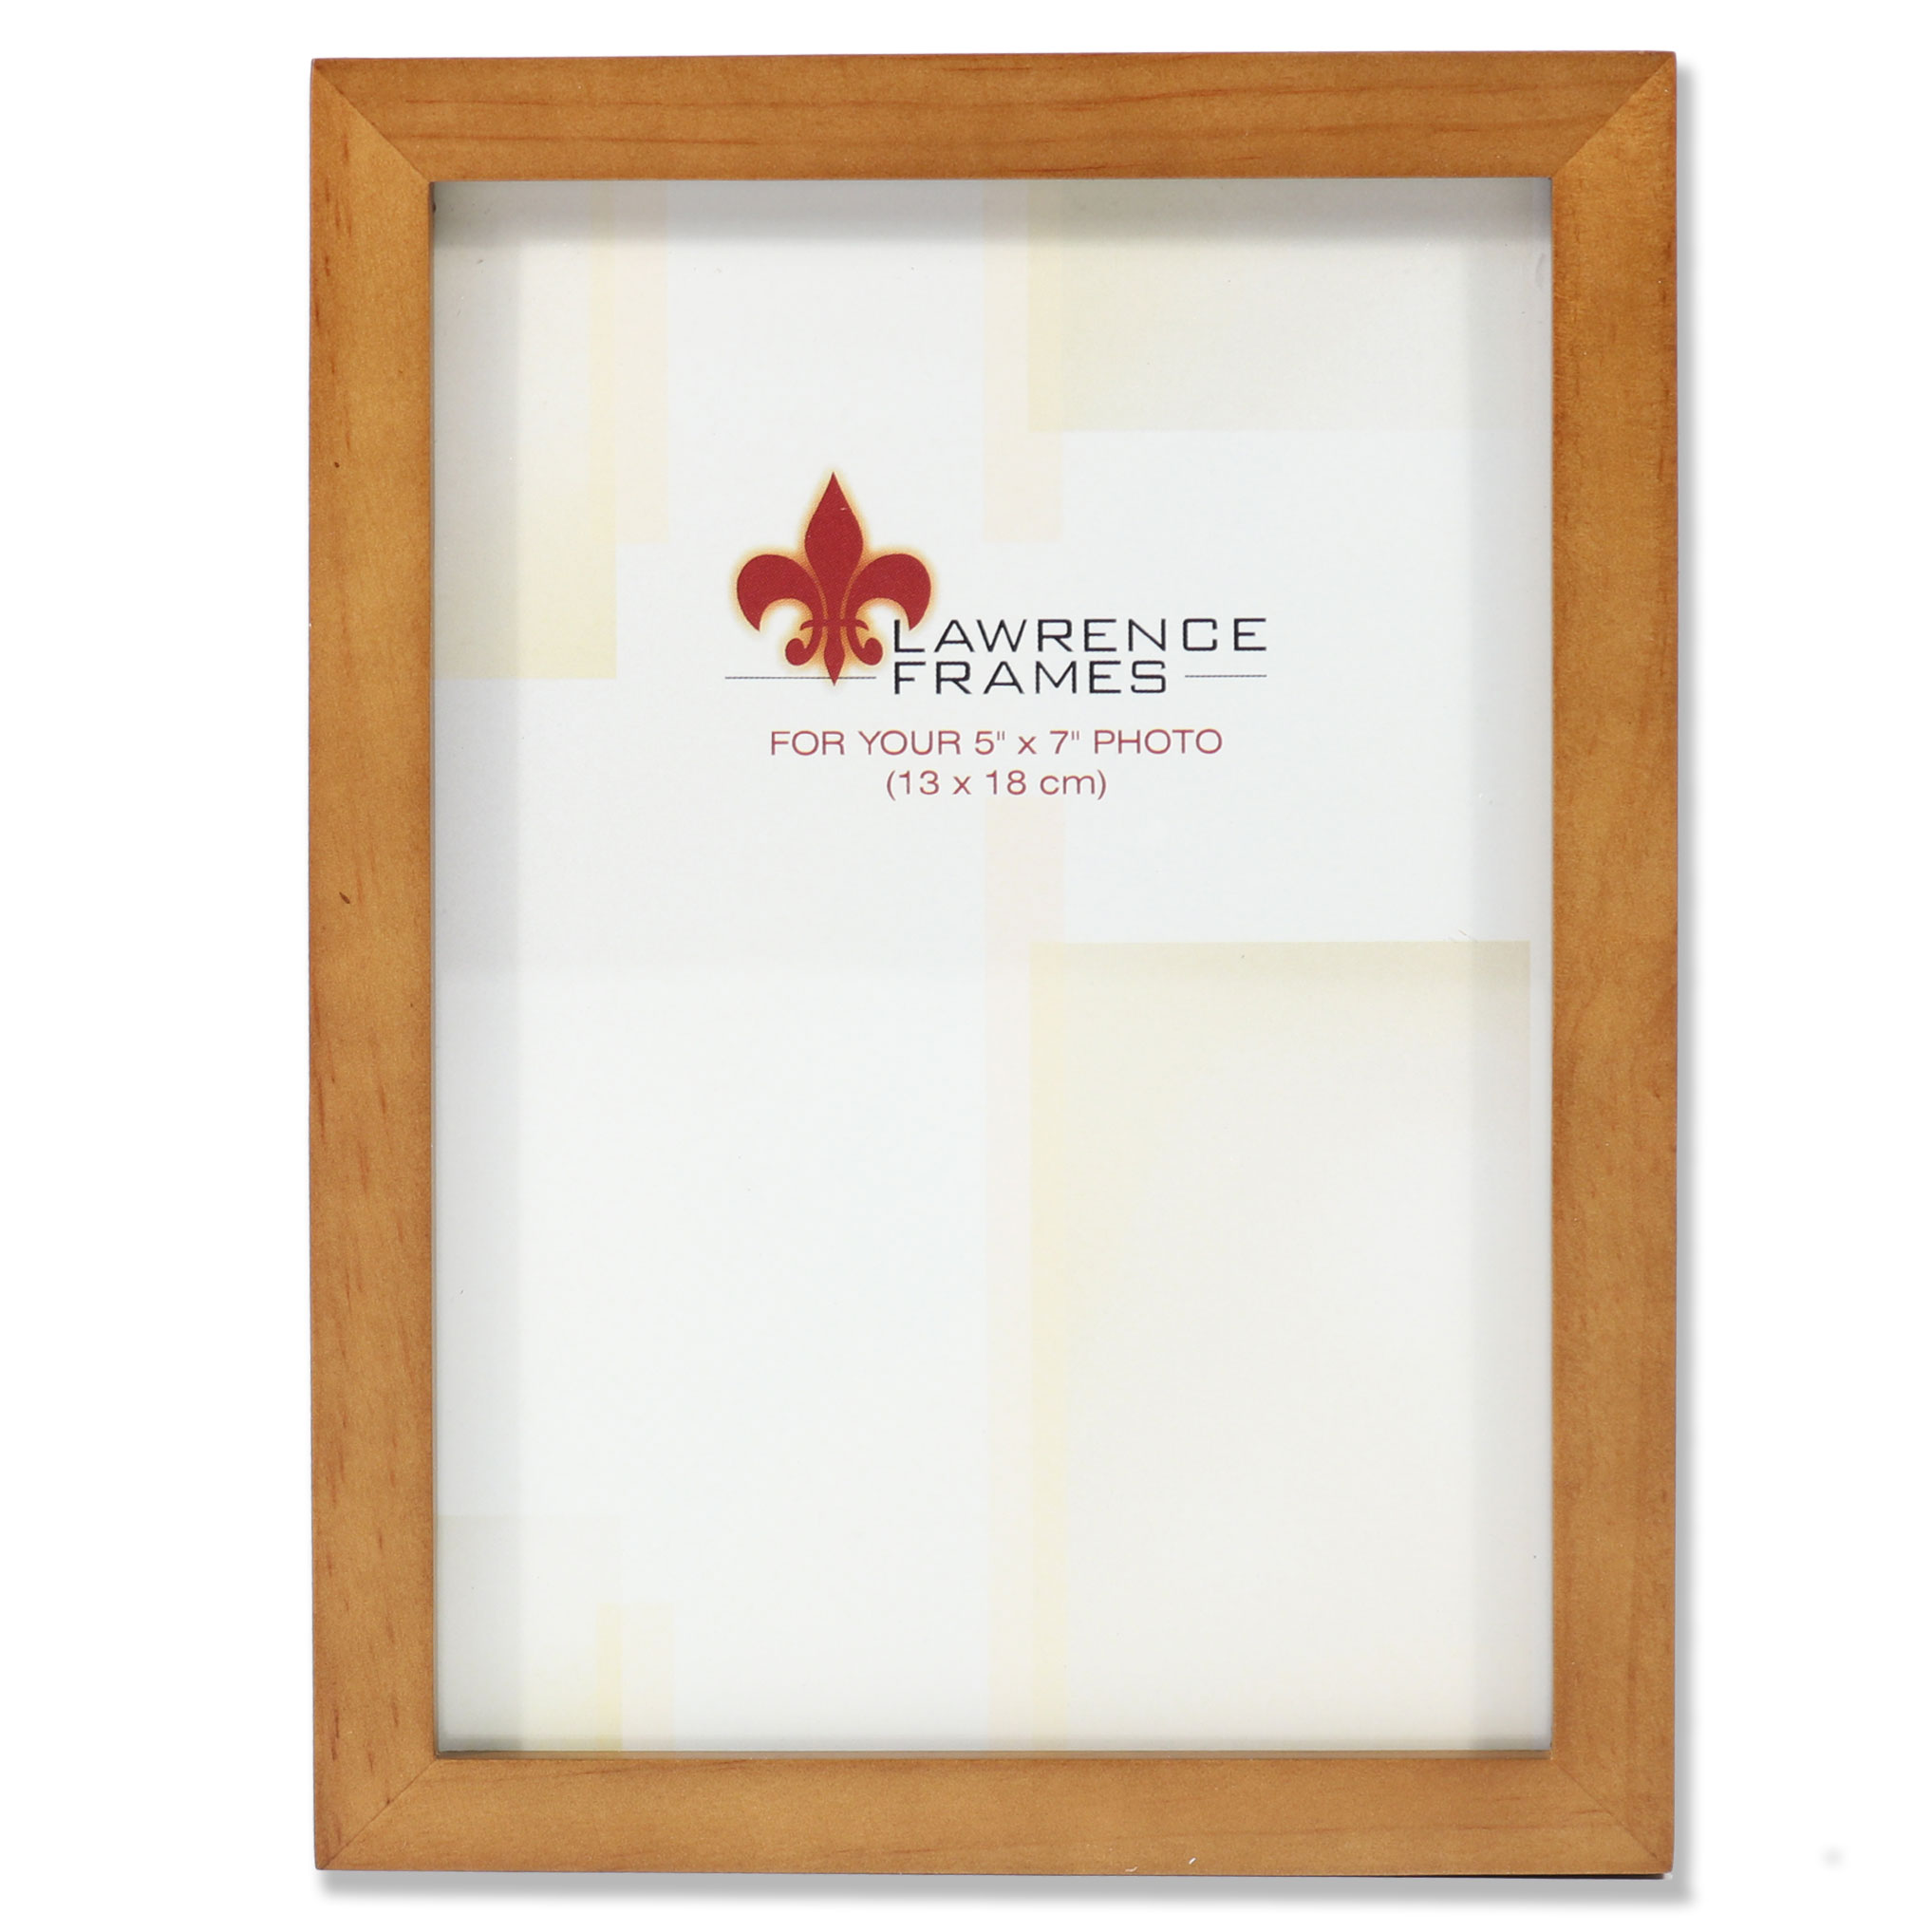 766057 Nutmeg Wood 5x7 Picture Frame